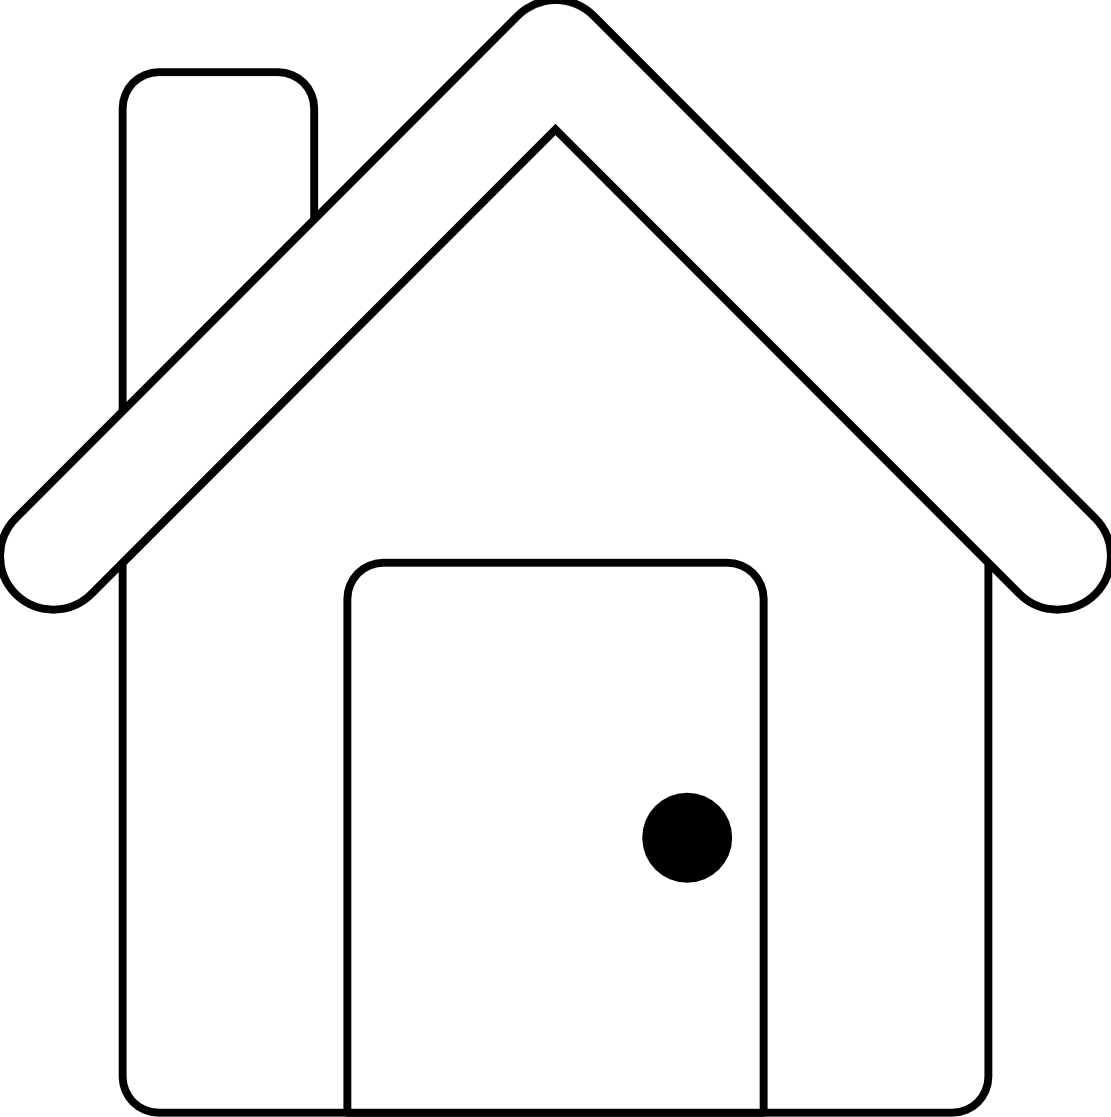 Apartment building black and. Home clipart outline